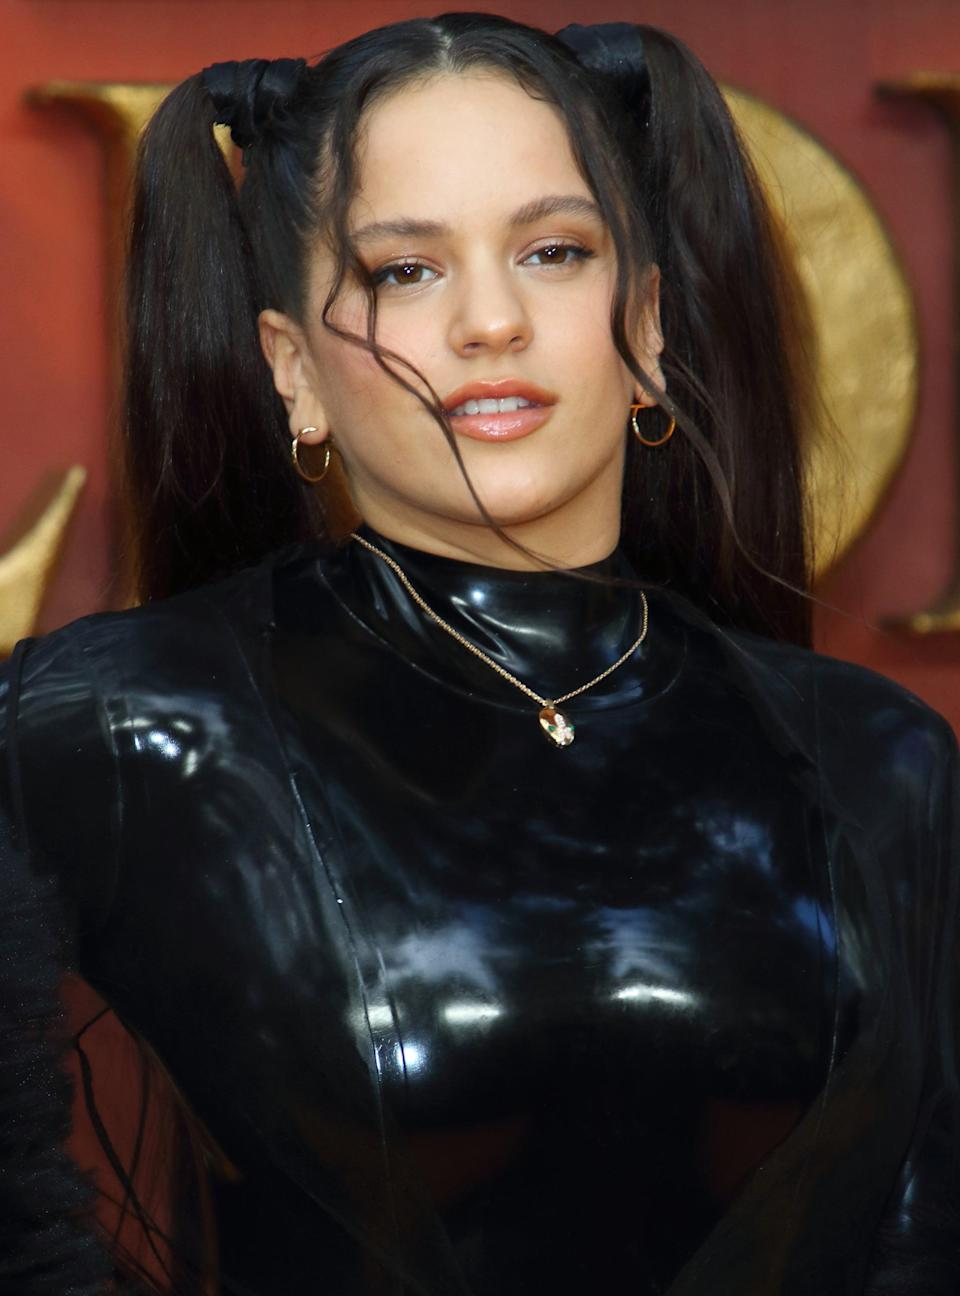 <p>Rosalía styled her hair in high pigtails with two face-framing pieces curled in the front.</p>